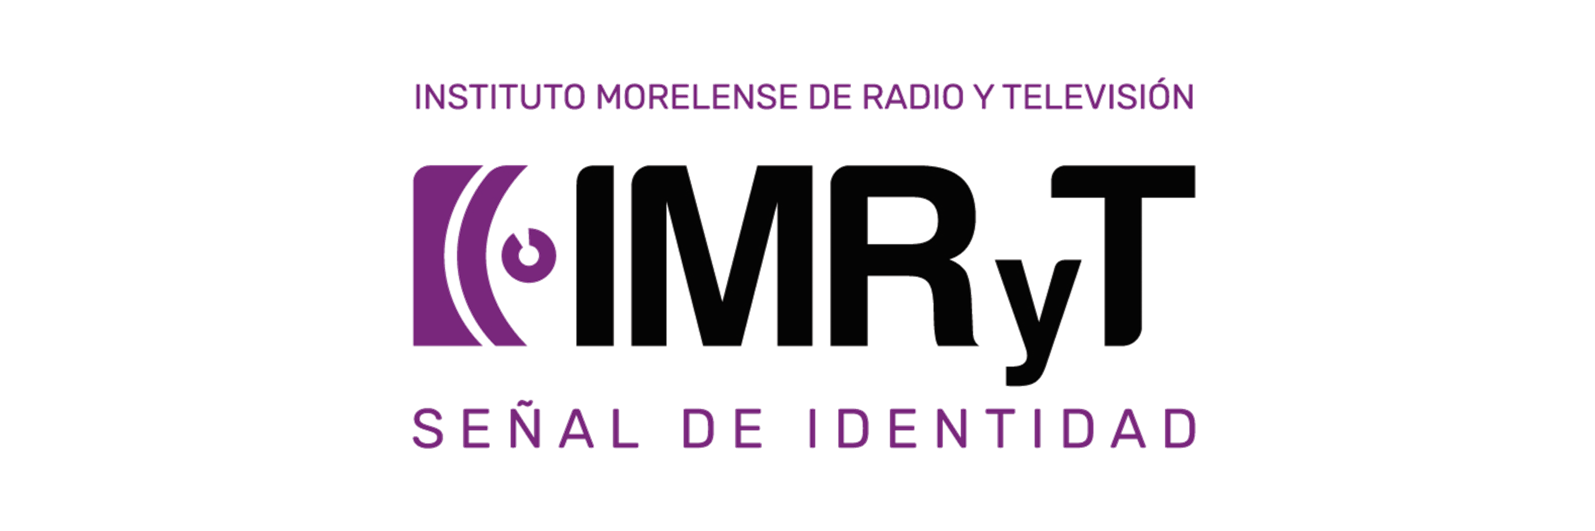 Instituto Morelense de Radio y Televisión